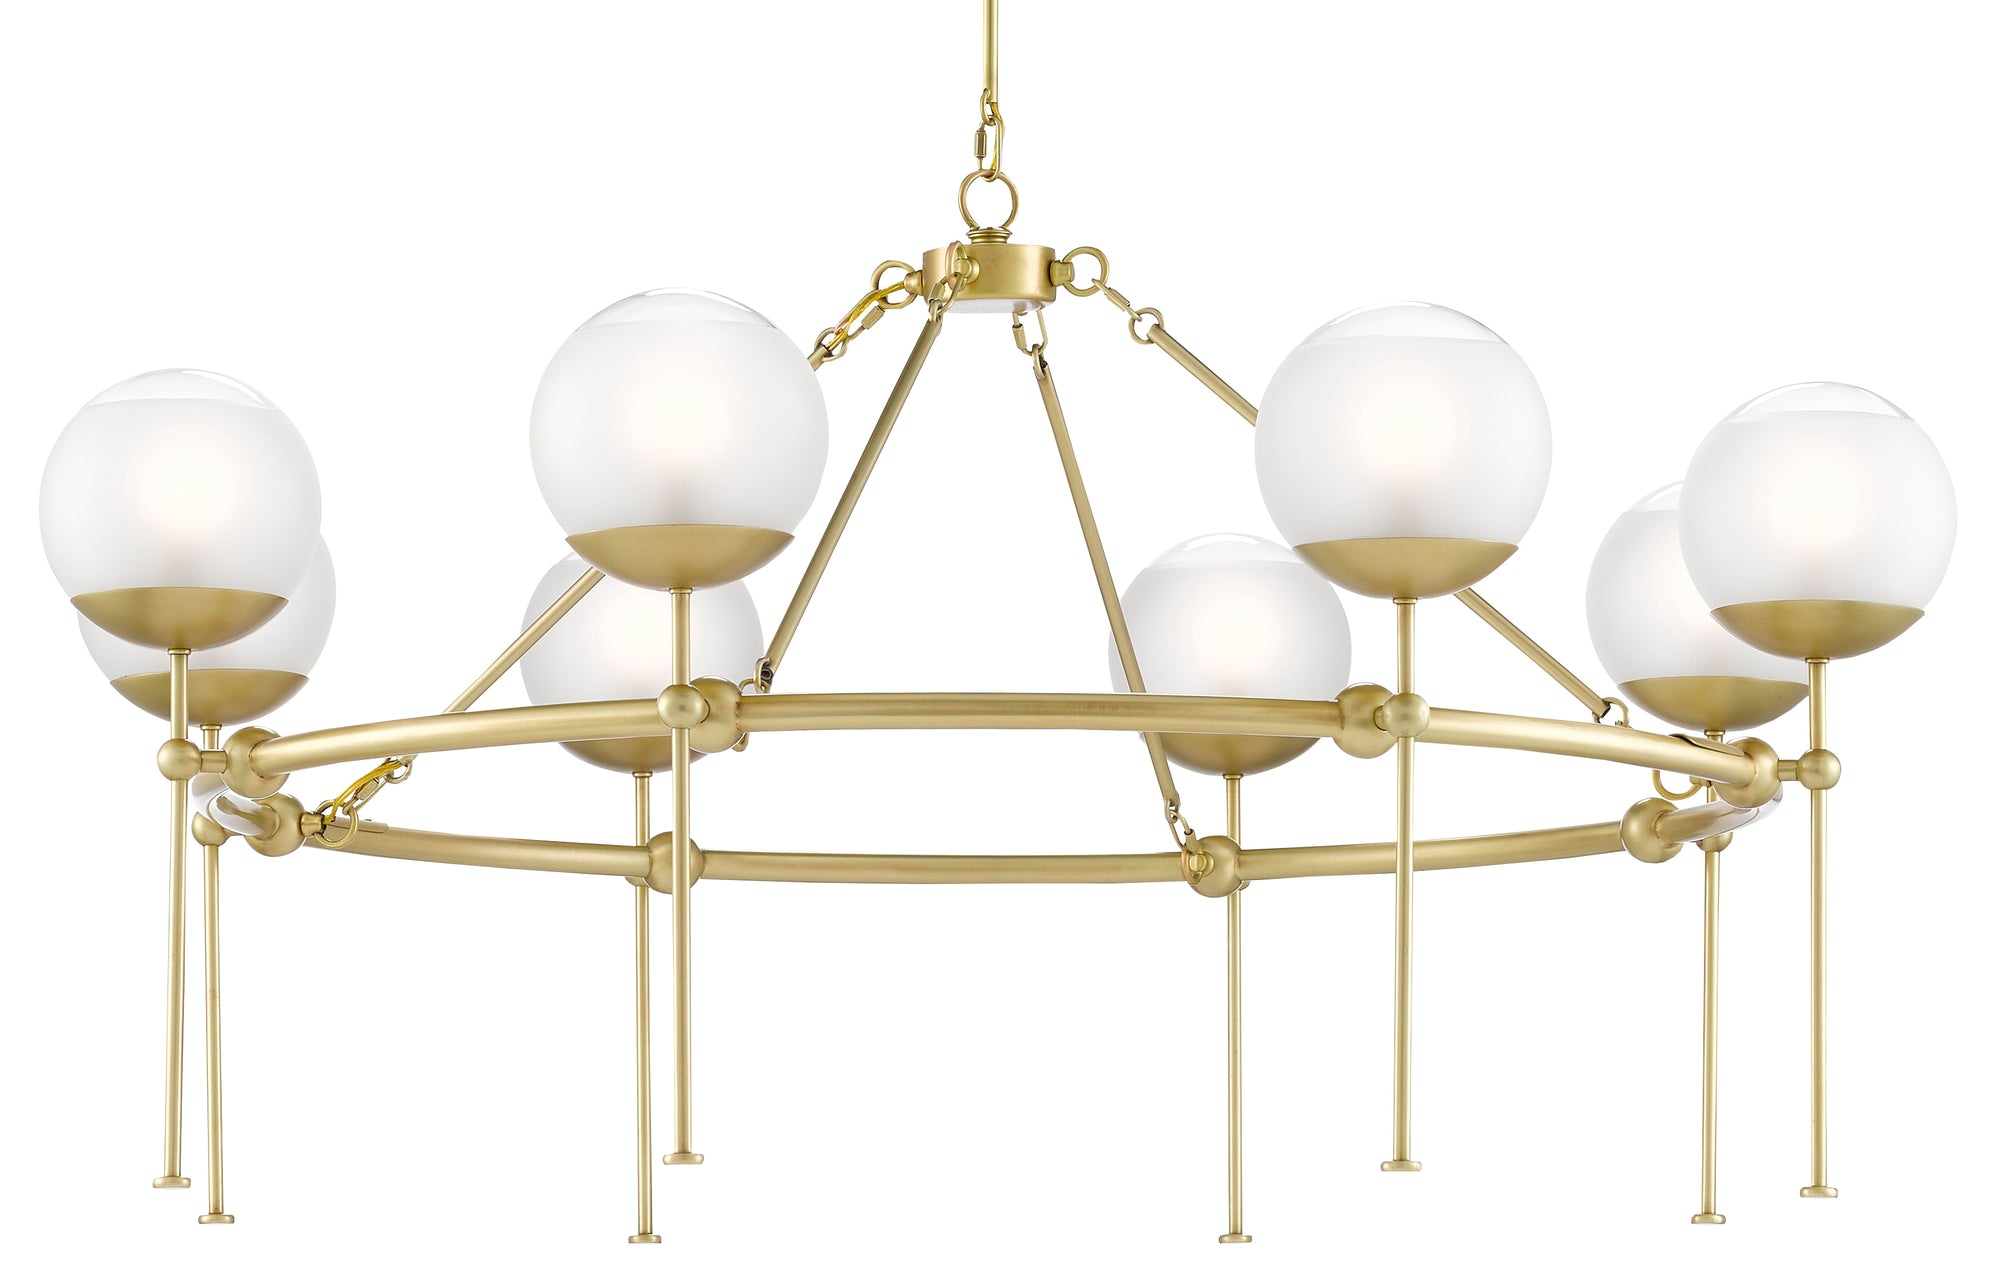 currey and company montview chanelier, brass globe chandelier